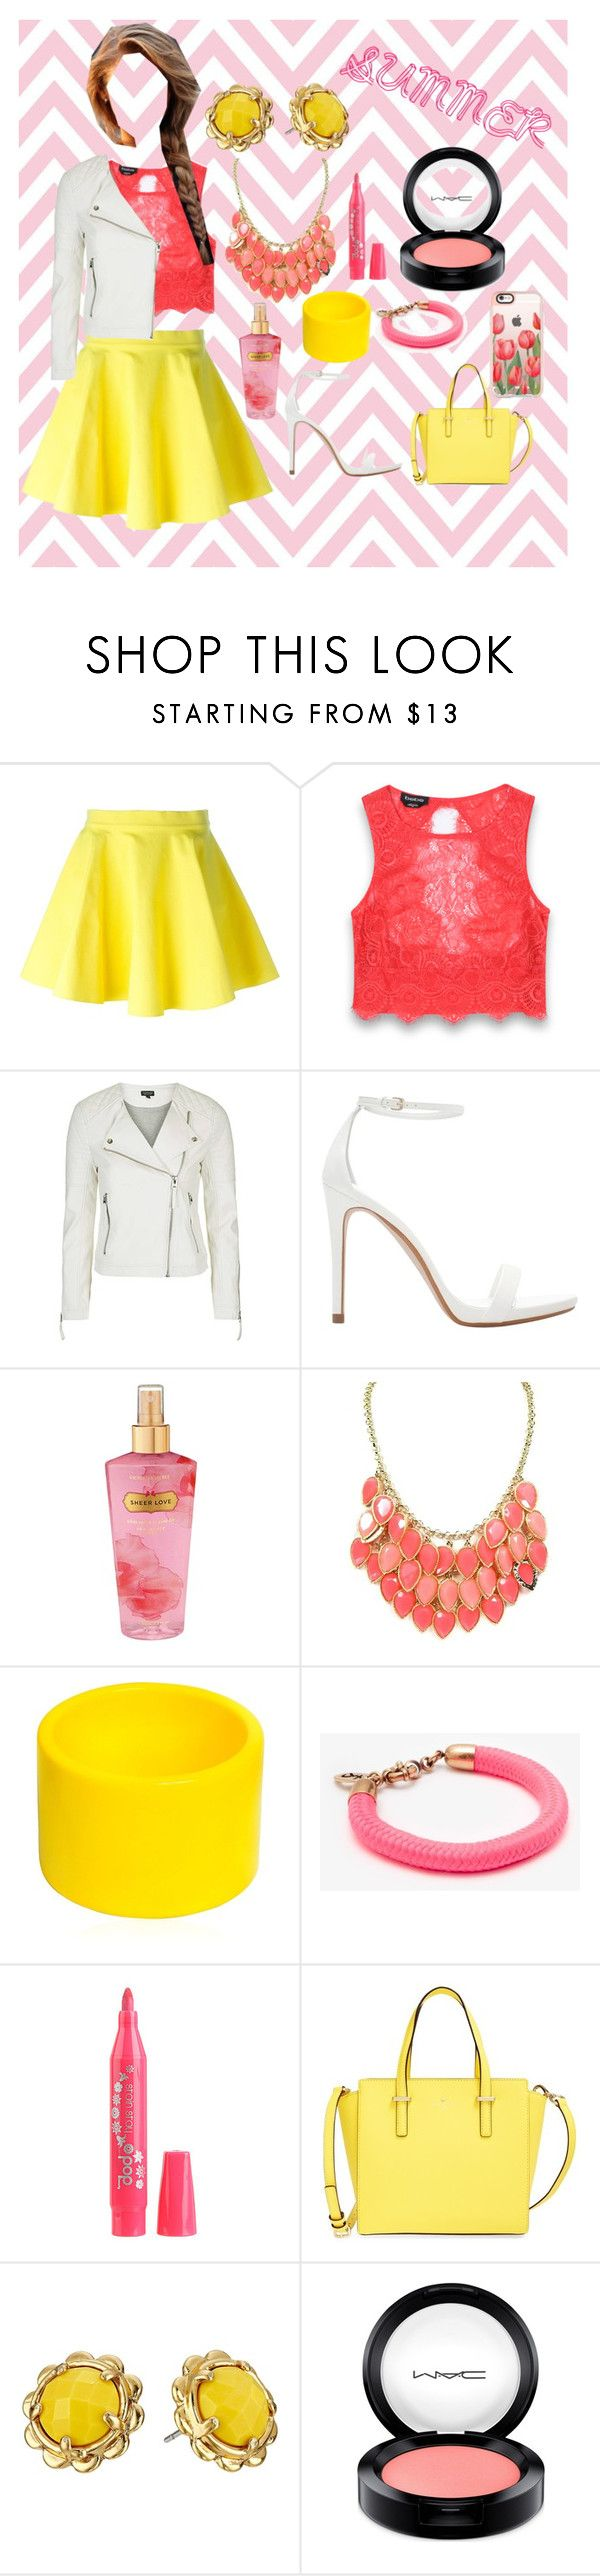 """Fluoro summer picnic outfit"" by bellaslife23 on Polyvore featuring Jeremy Scott, Bebe, Topshop, Zara, Victoria's Secret, Dsquared2, Joules, Pop Beauty, Kate Spade and MAC Cosmetics"